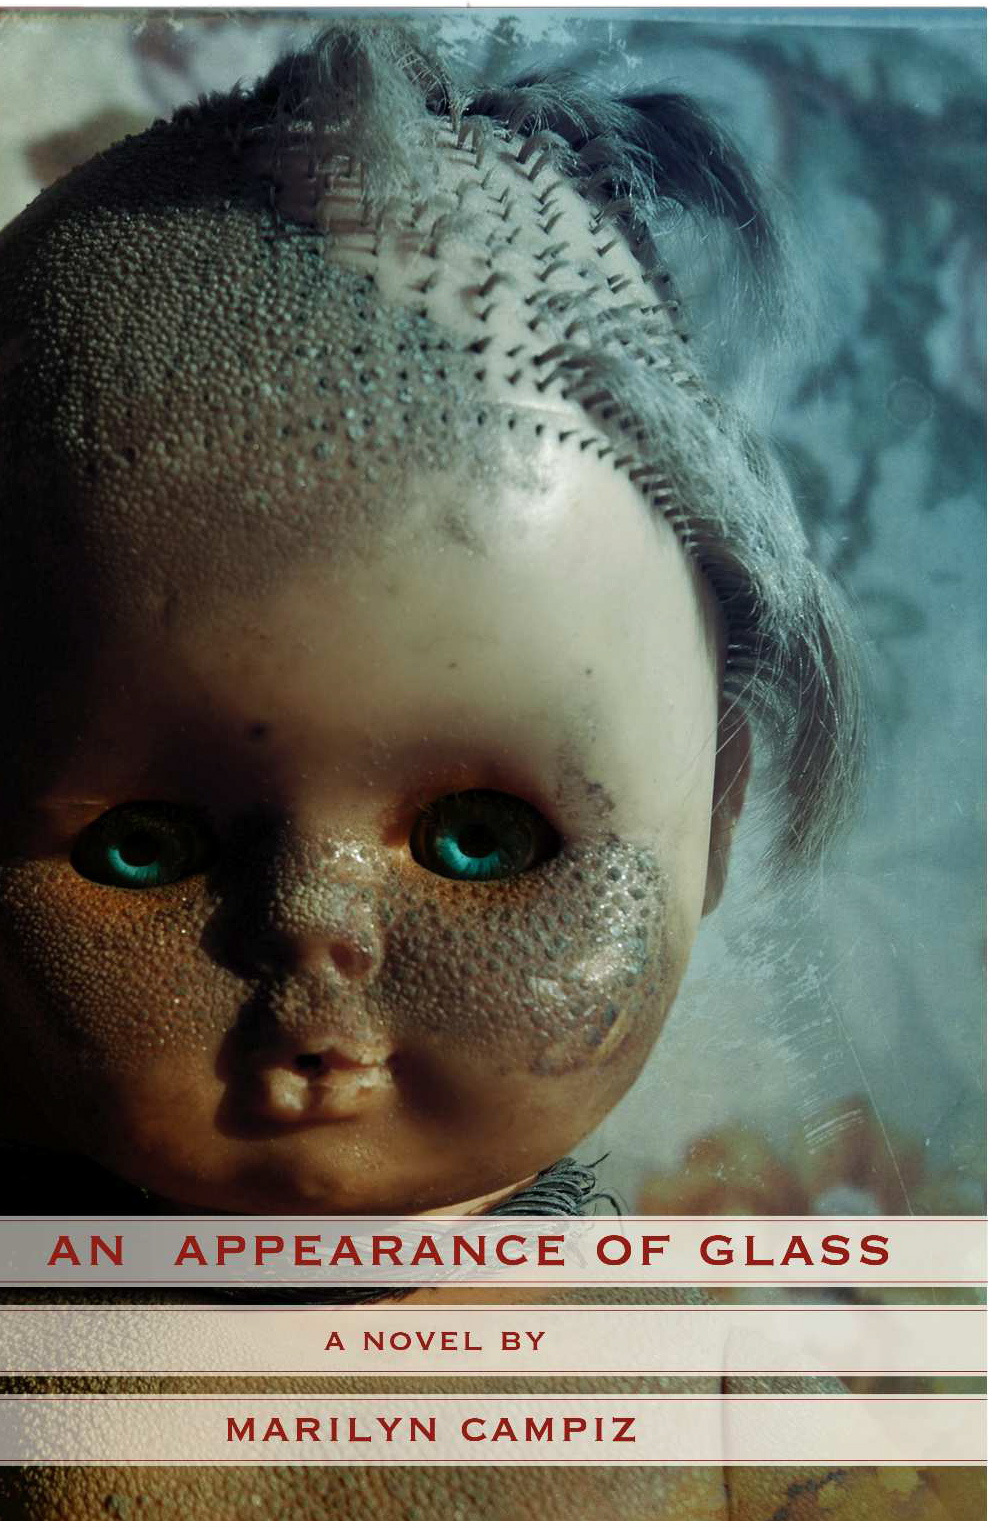 An Appearance of Glass